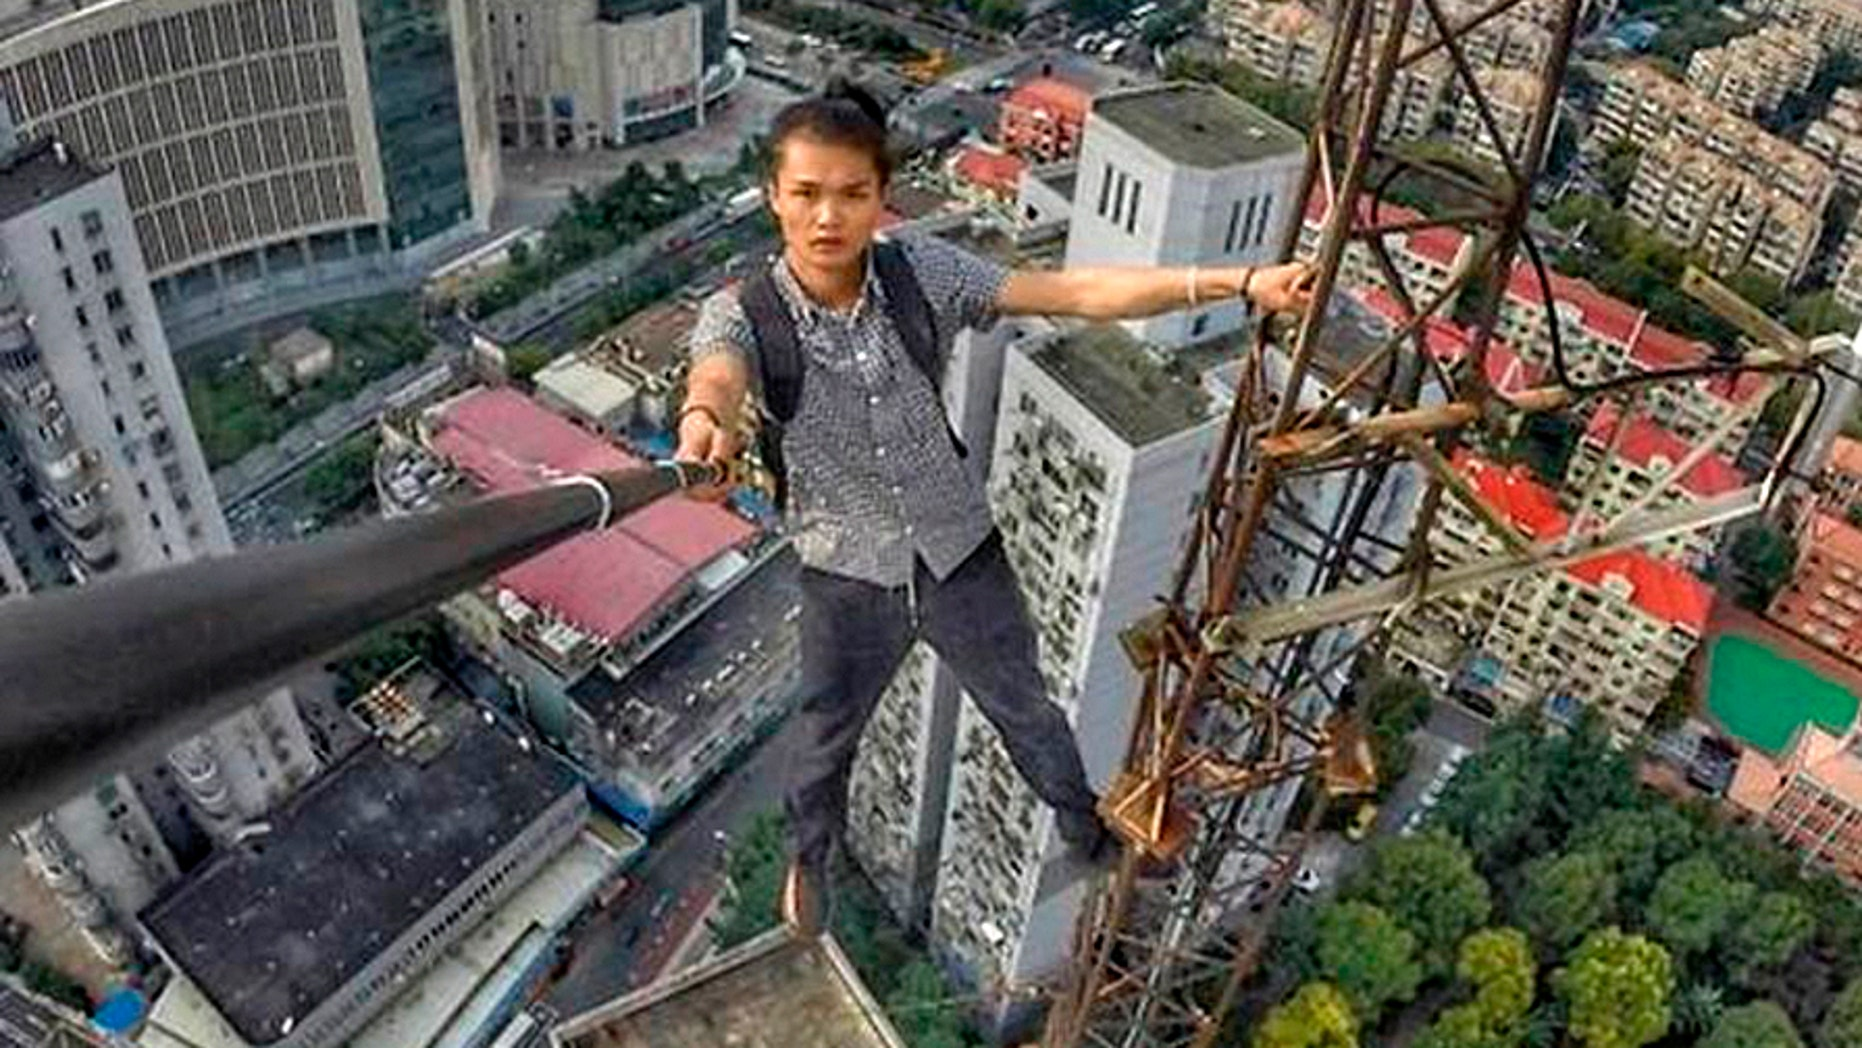 """Rooftopper"" Wu Yongning. (Courtesy of Weibo)"